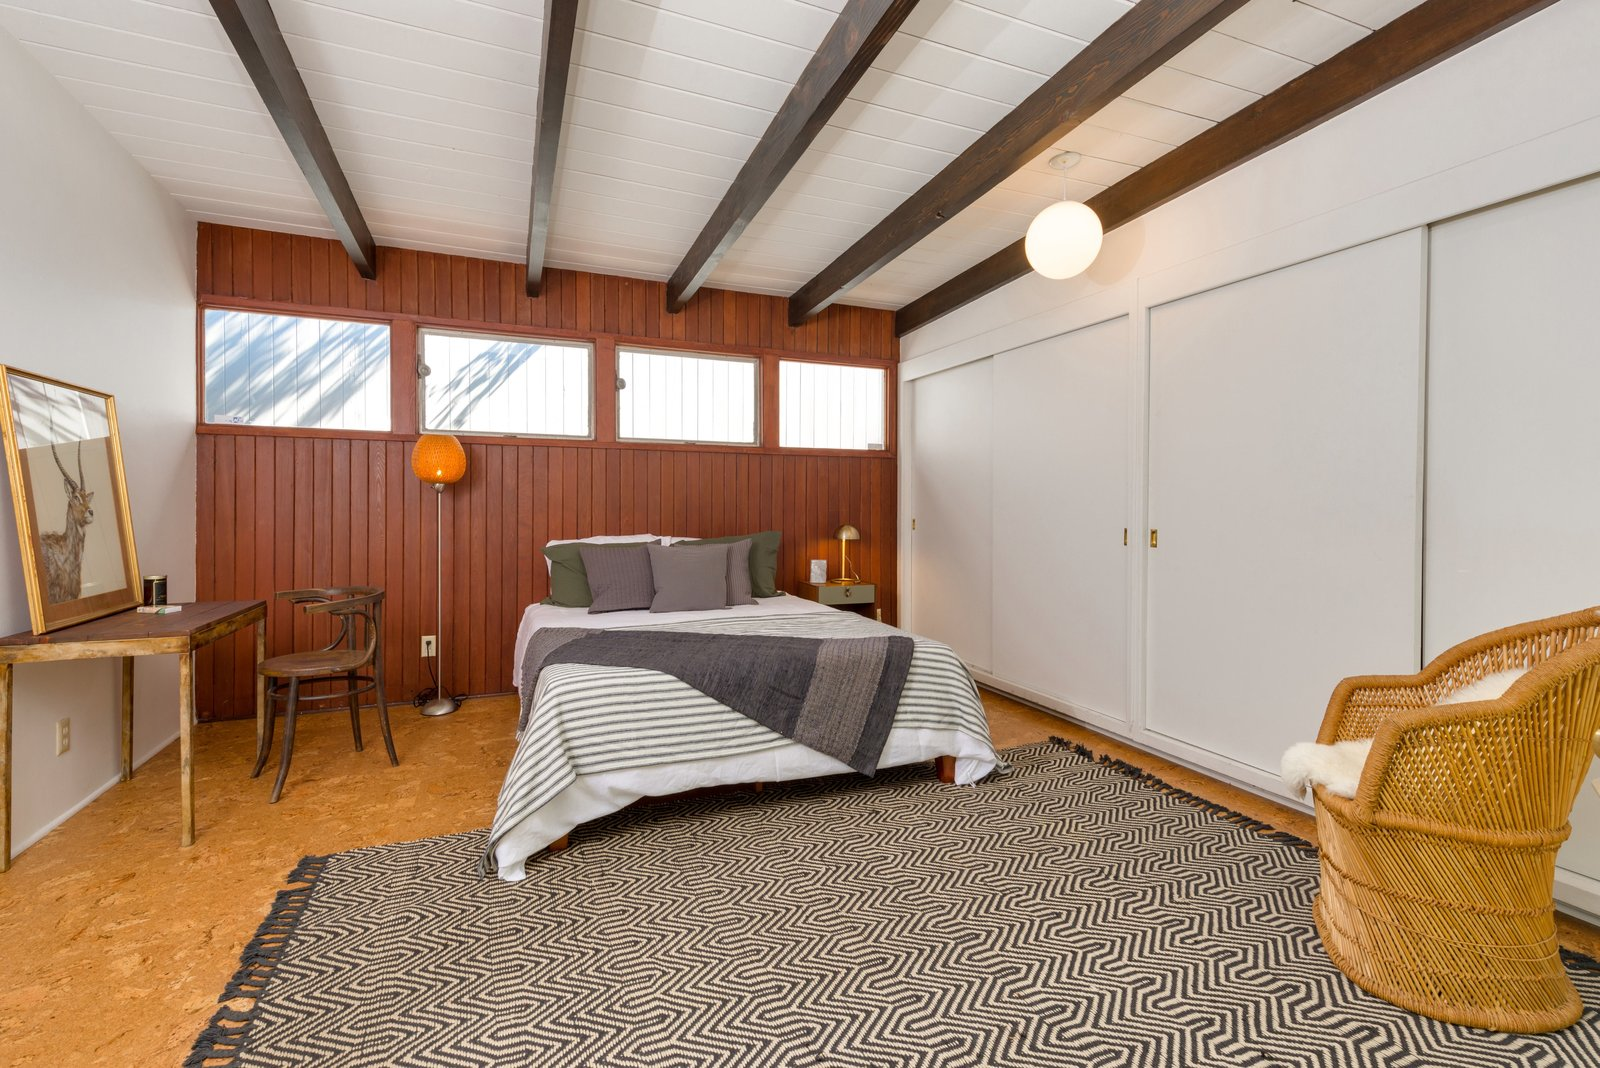 Bedroom, Chair, Pendant Lighting, Bed, Floor Lighting, Night Stands, Cork Floor, and Rug Floor The second bedroom has doors leading to the outdoor patio.  Photo 14 of 17 in Snag This Hollywood Hills Midcentury Home For $1M